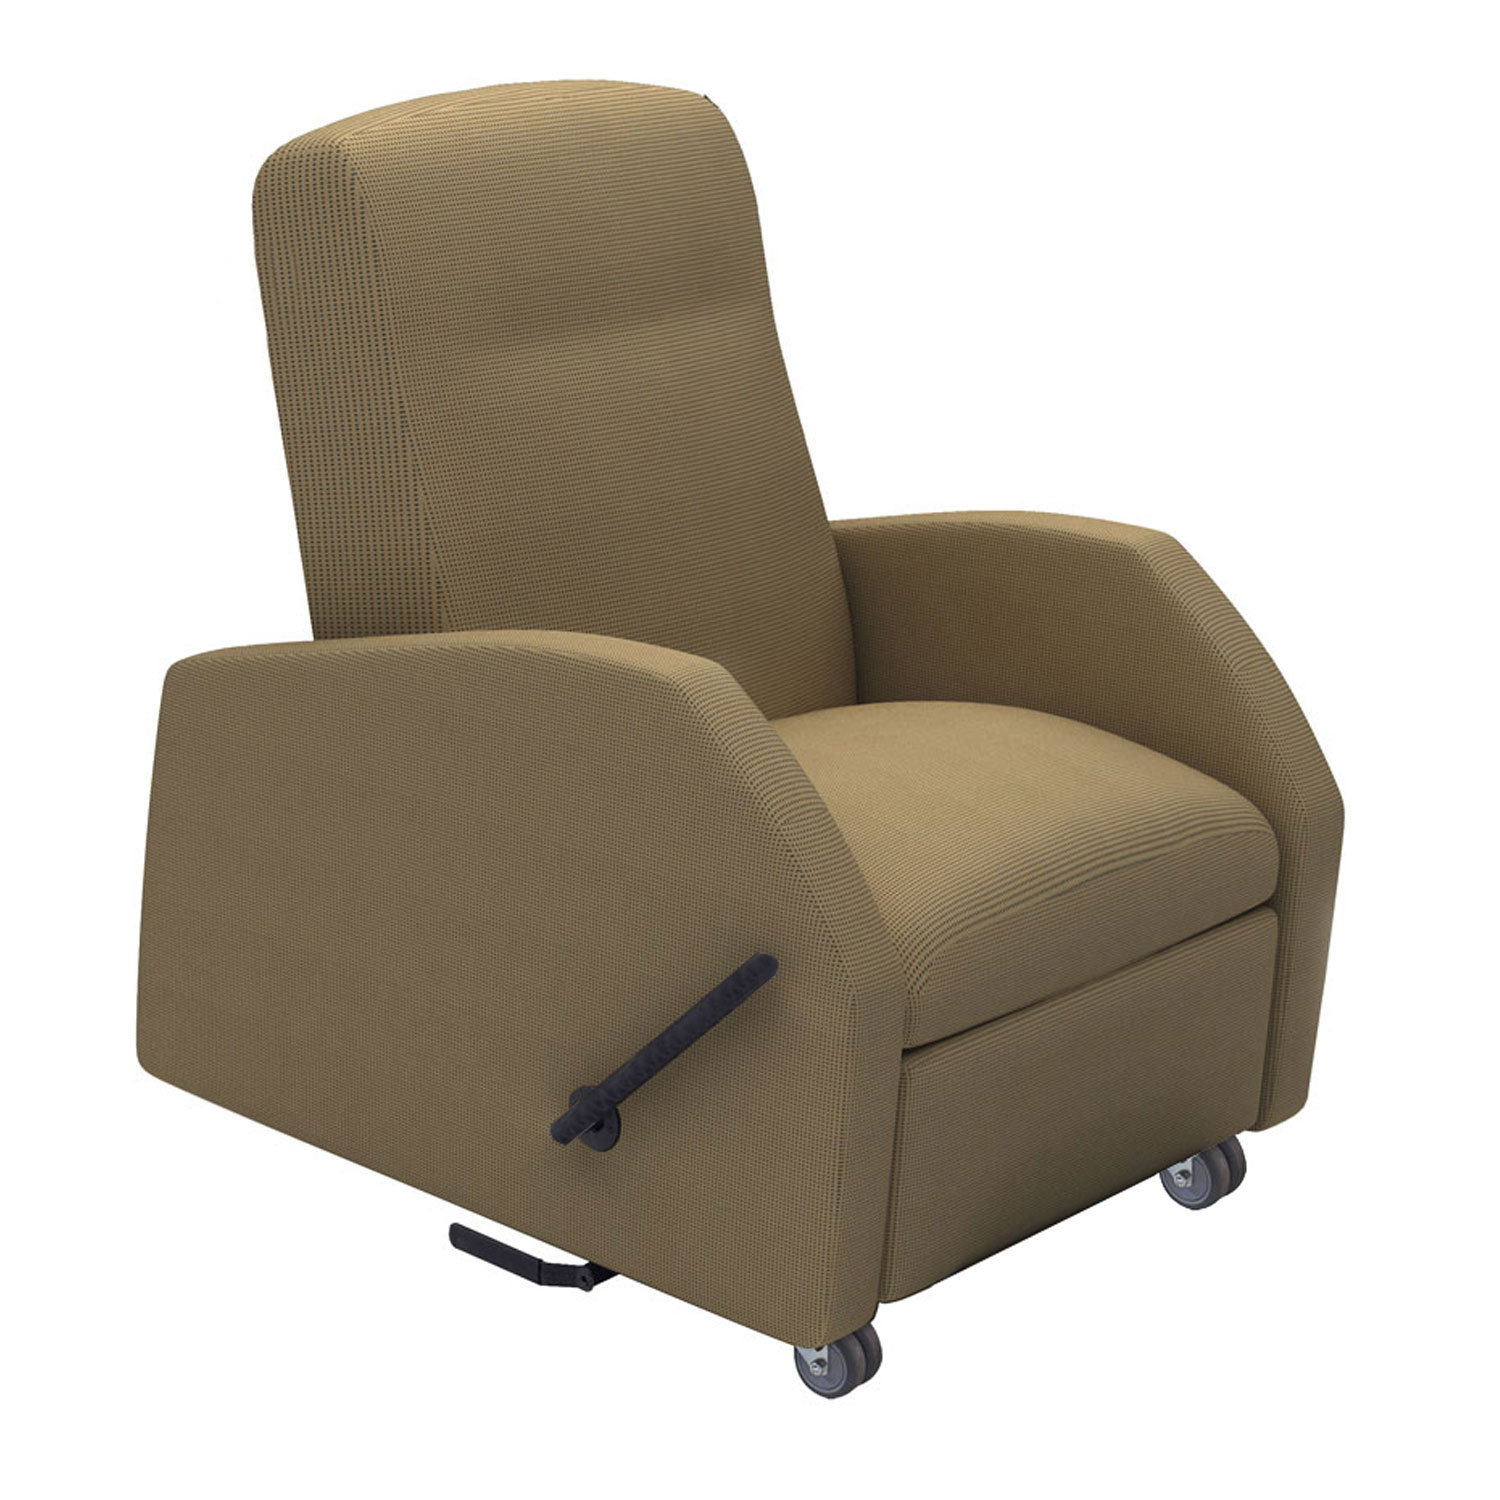 Outlined Healthcare Recliners Hannah 830 963 Web Jpg